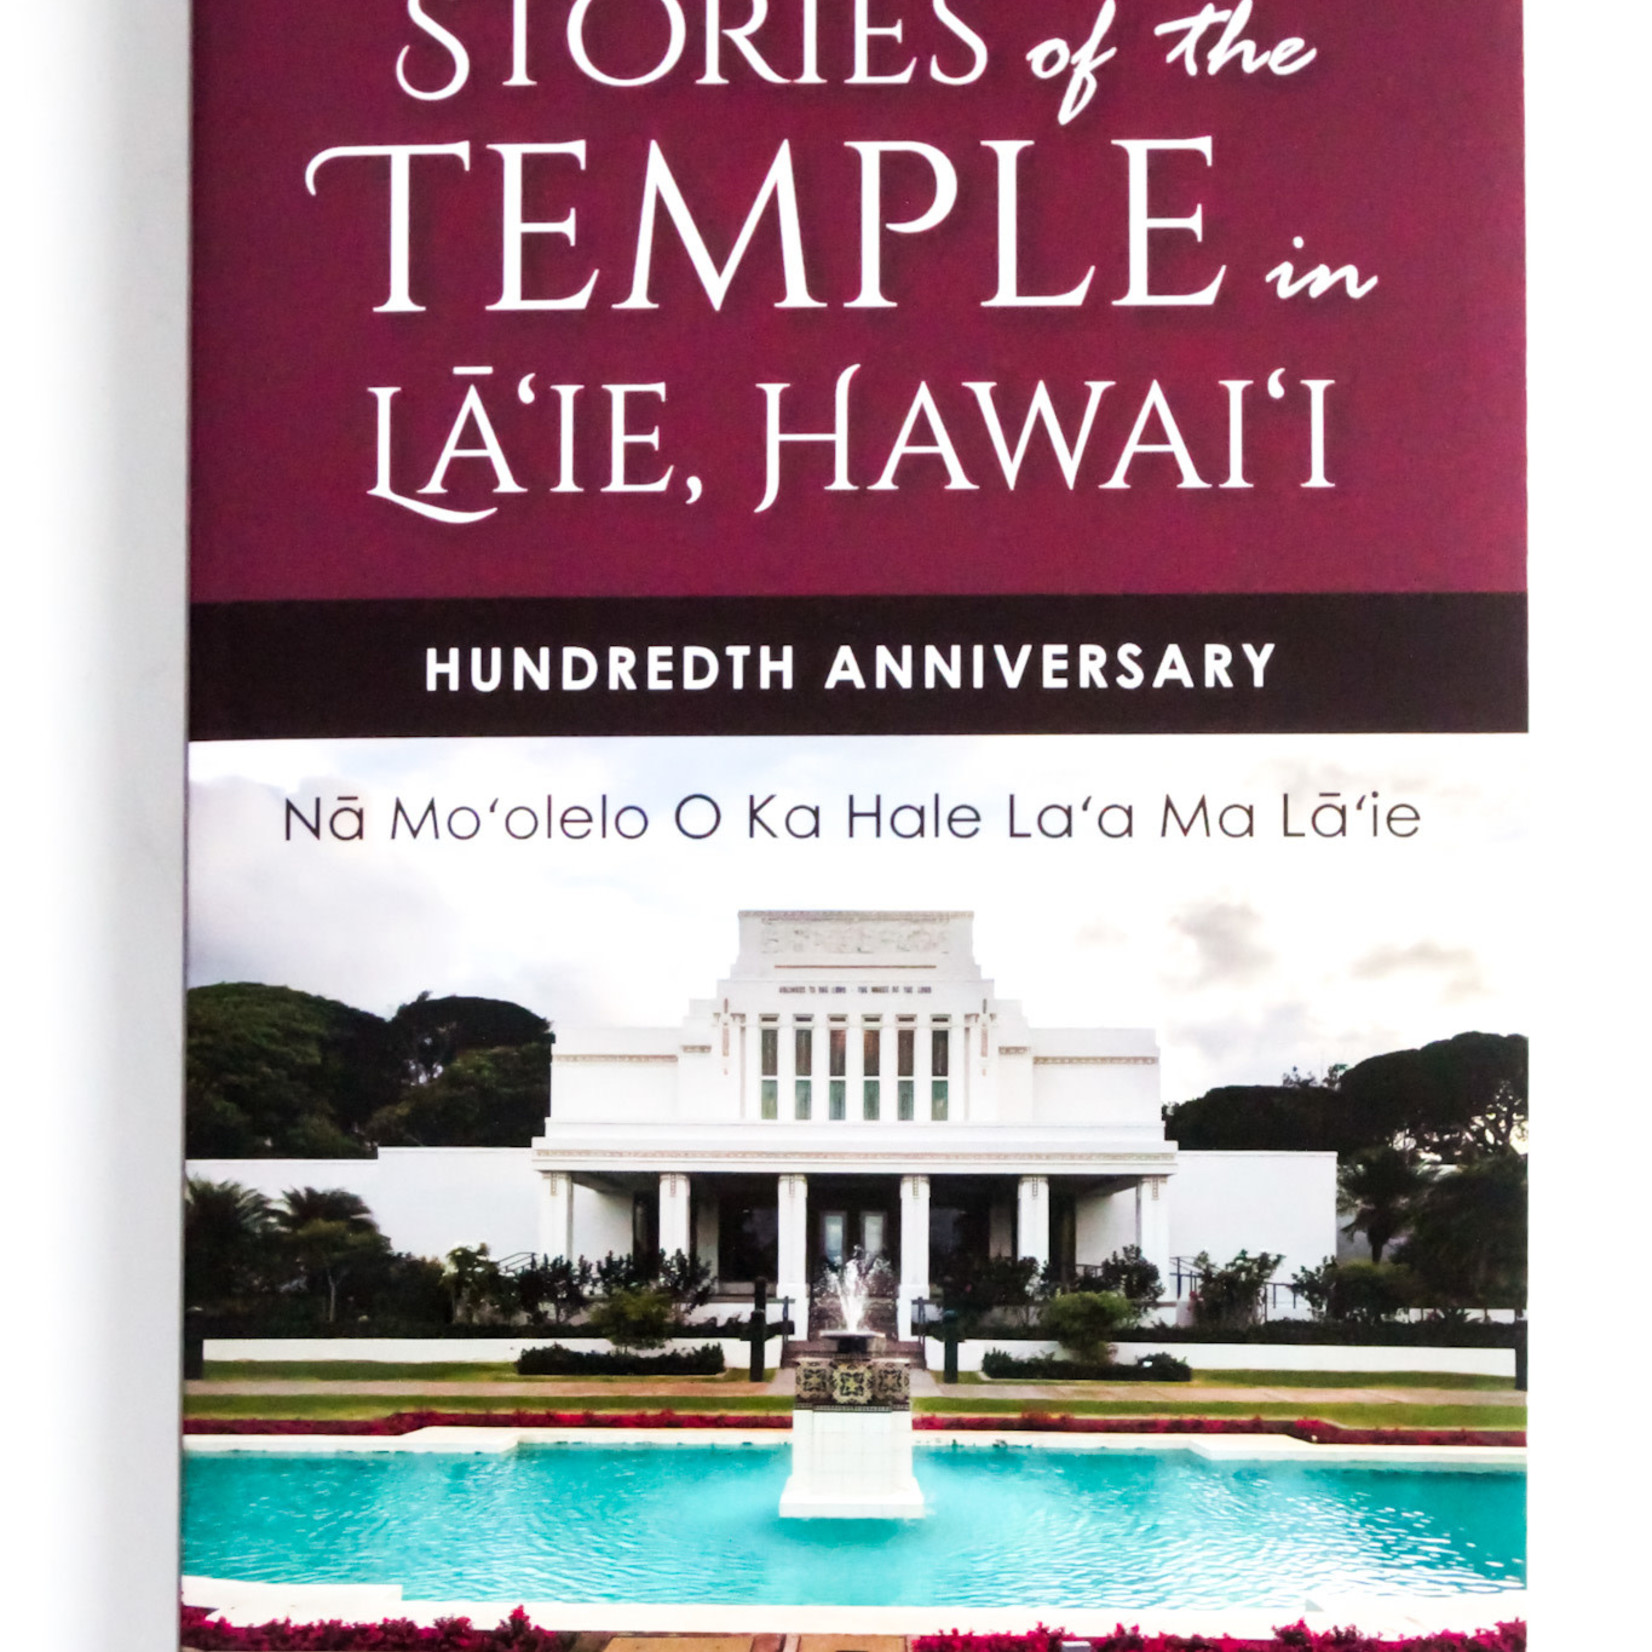 Stories of the Temple in Laie, Hawaii